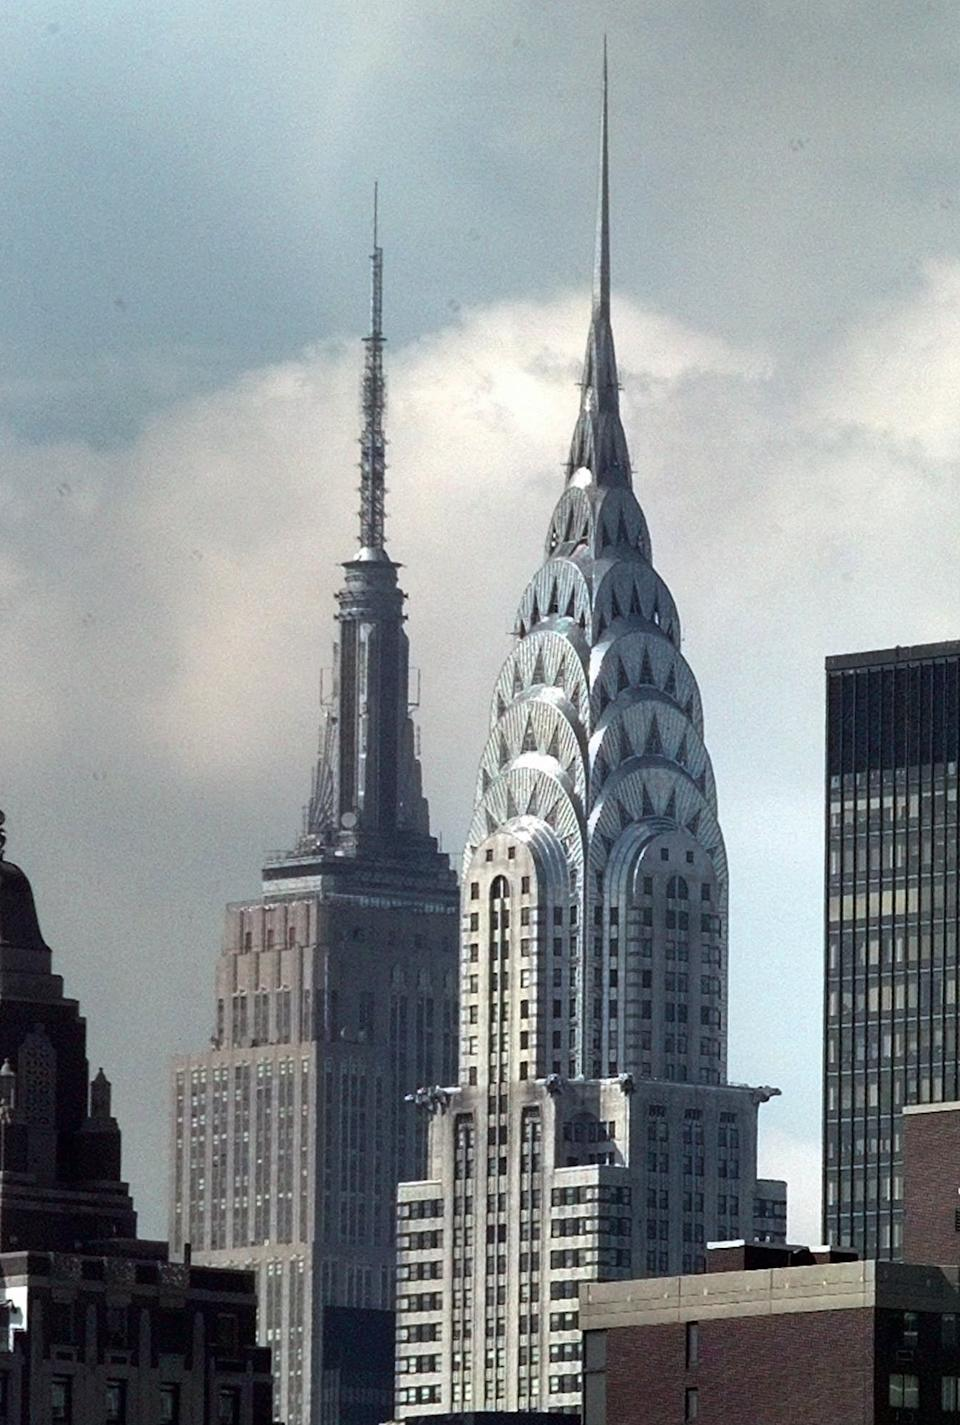 FILE - This Sept. 15, 1997, file photo, shows the Chrysler Building, right center, and The Empire State Building, left center, in New York. The Chrysler Building was New York's tallest from 1930-31, until the completion of the Empire State Building. (AP Photo/Richard Drew, File)